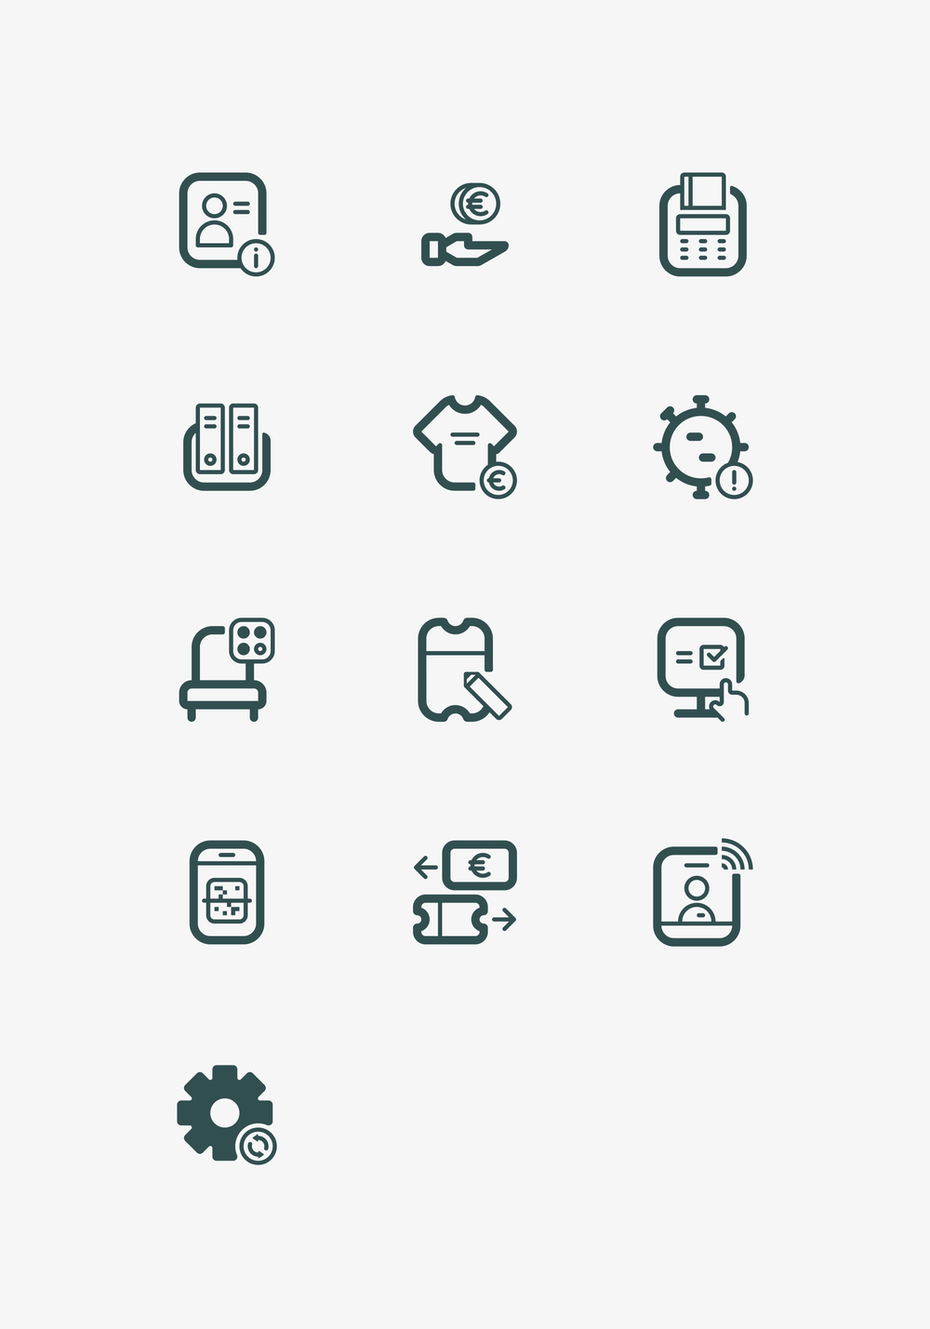 Icons for a ticketing app